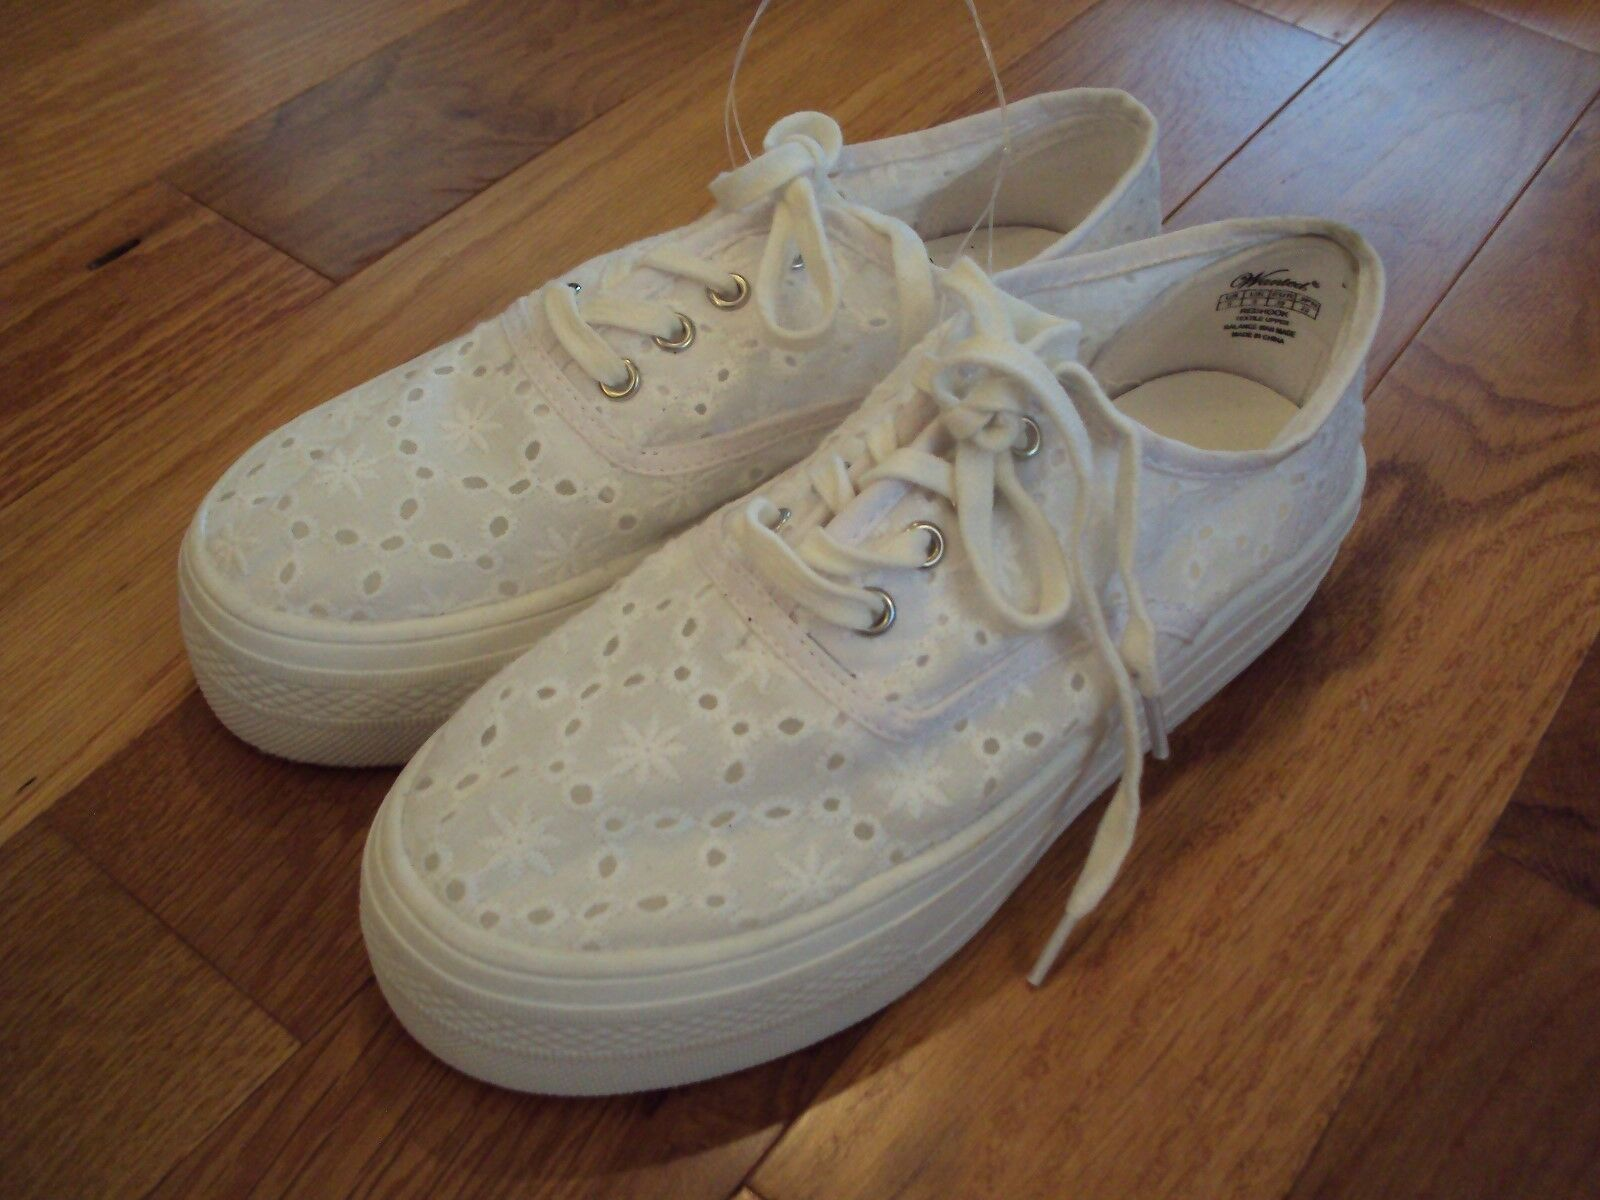 NEW Sneakers Wanted Redhook WHITE EYELET Sneakers NEW Shoes Womens size 10 d529be